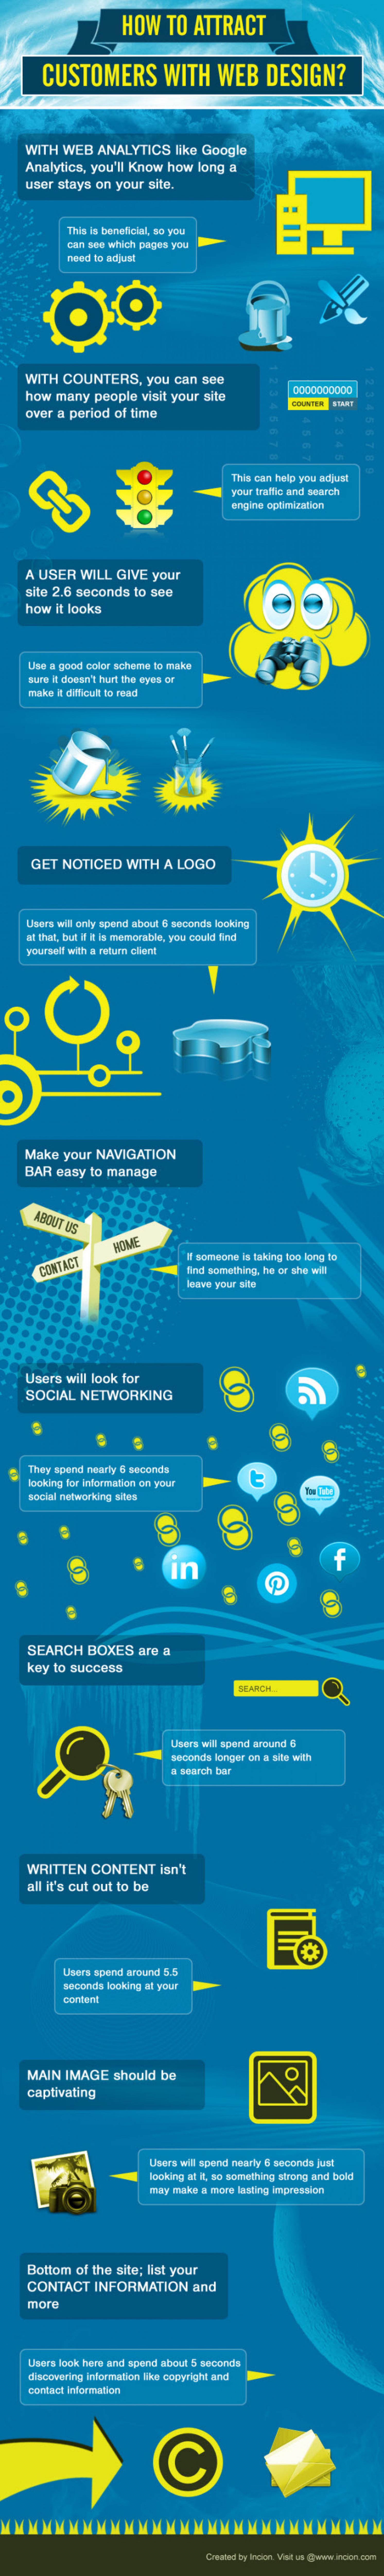 How to Attract Customers with Web Design?  Infographic